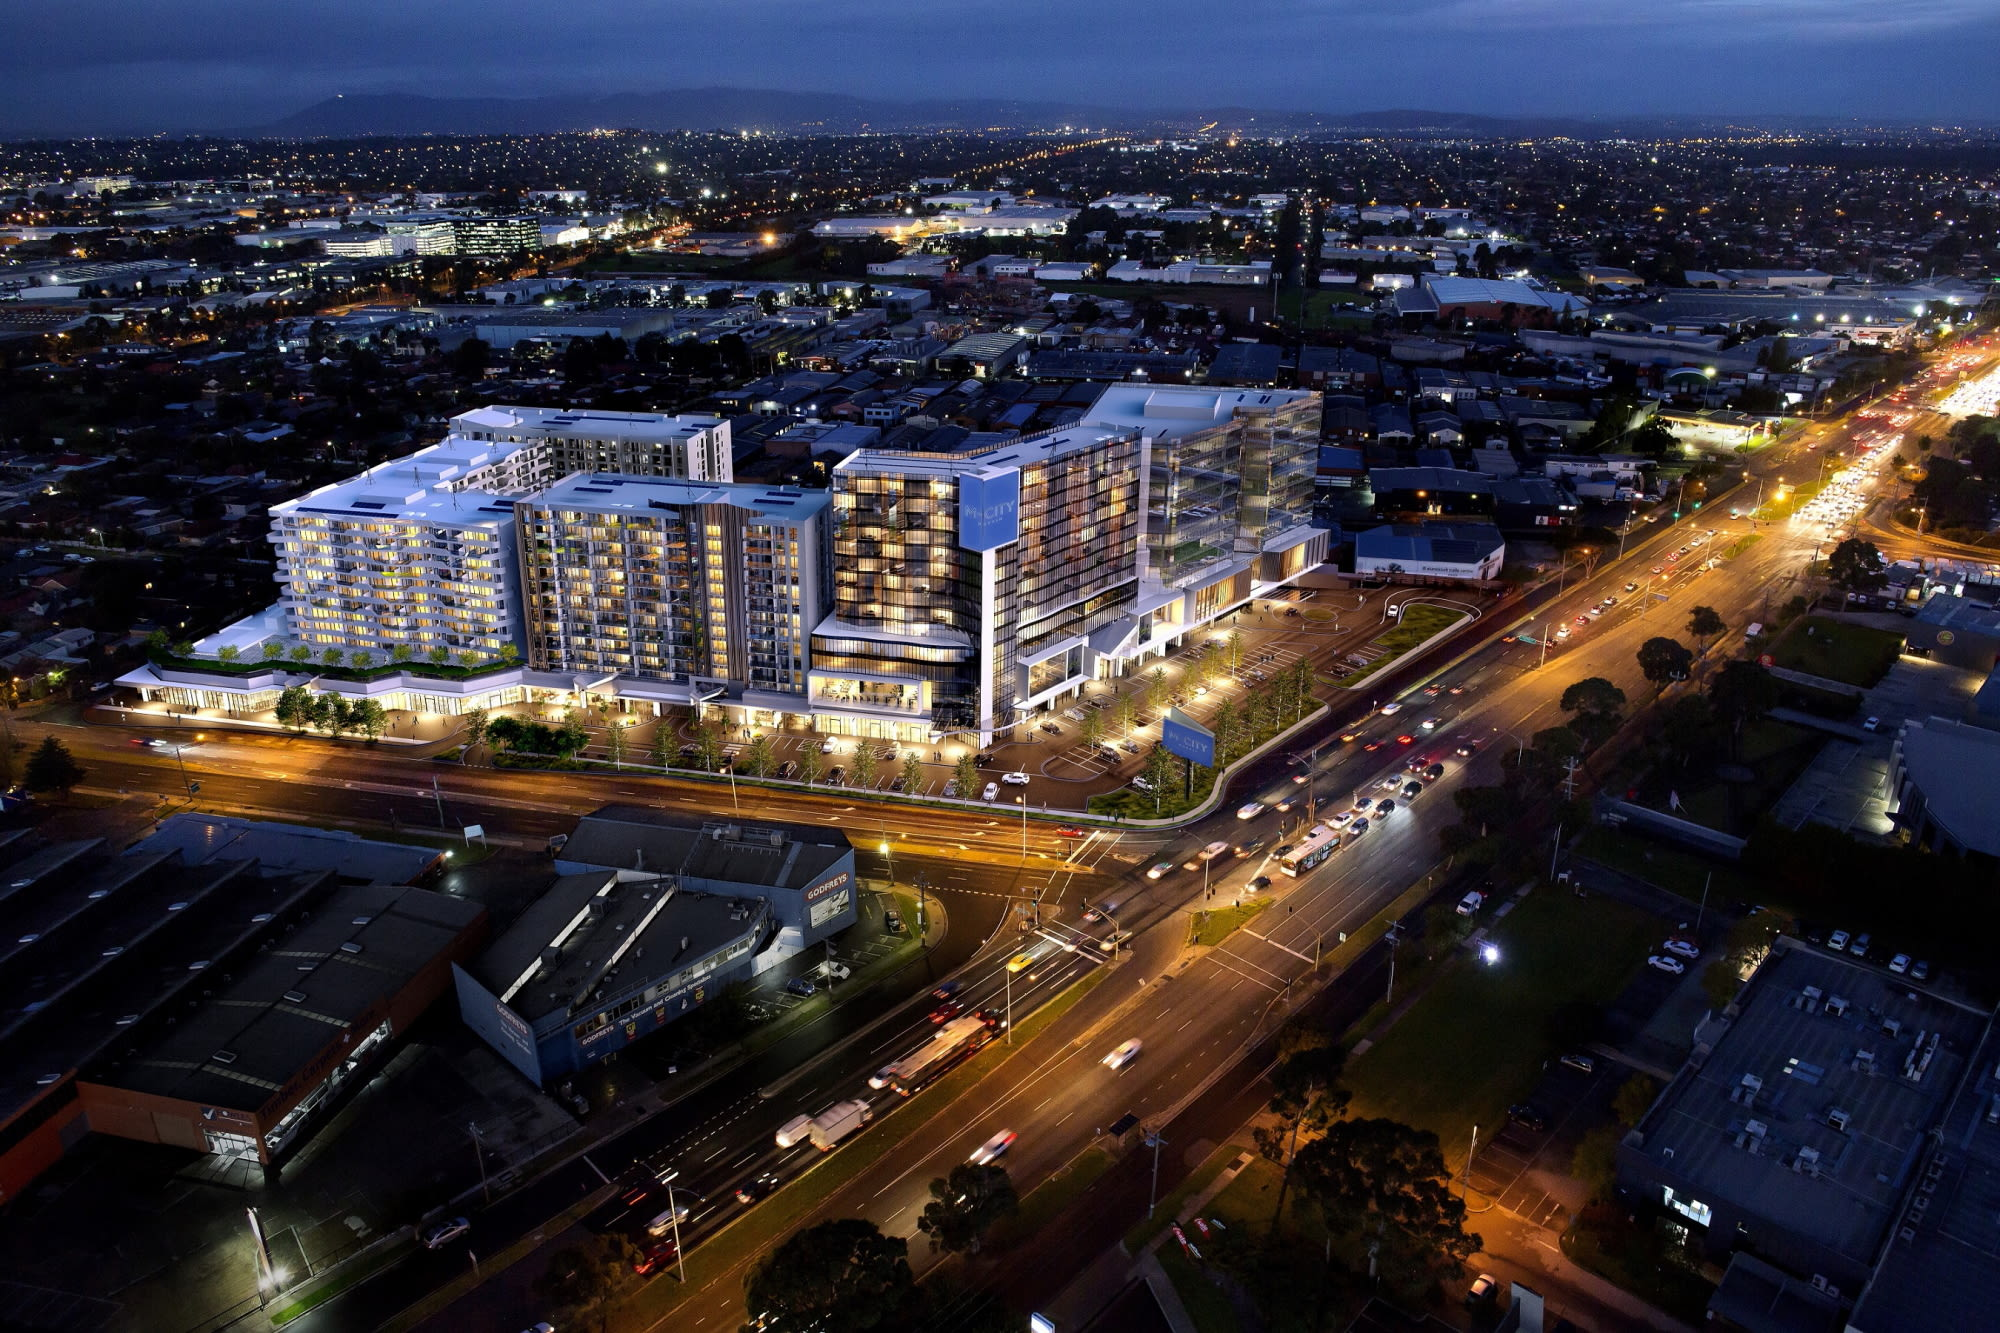 Mantra Group to Operate Hotel and Apartments in New A$1b Development in Clayton, Melbourne